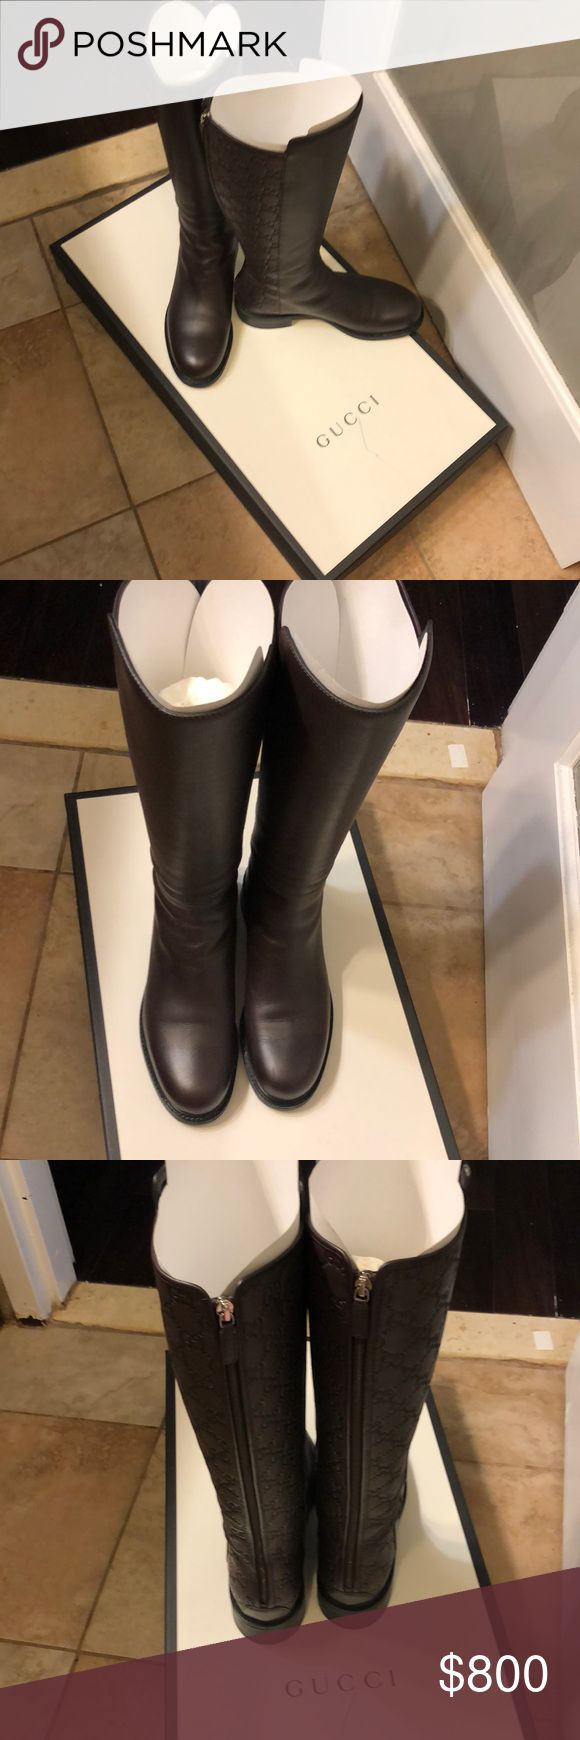 Gucci leather authentic signature rider boots Used once - Calf length - Great condition - No tears, marks or scuffs. Comes with box & dust bag Gucci Shoes Winter & Rain Boots